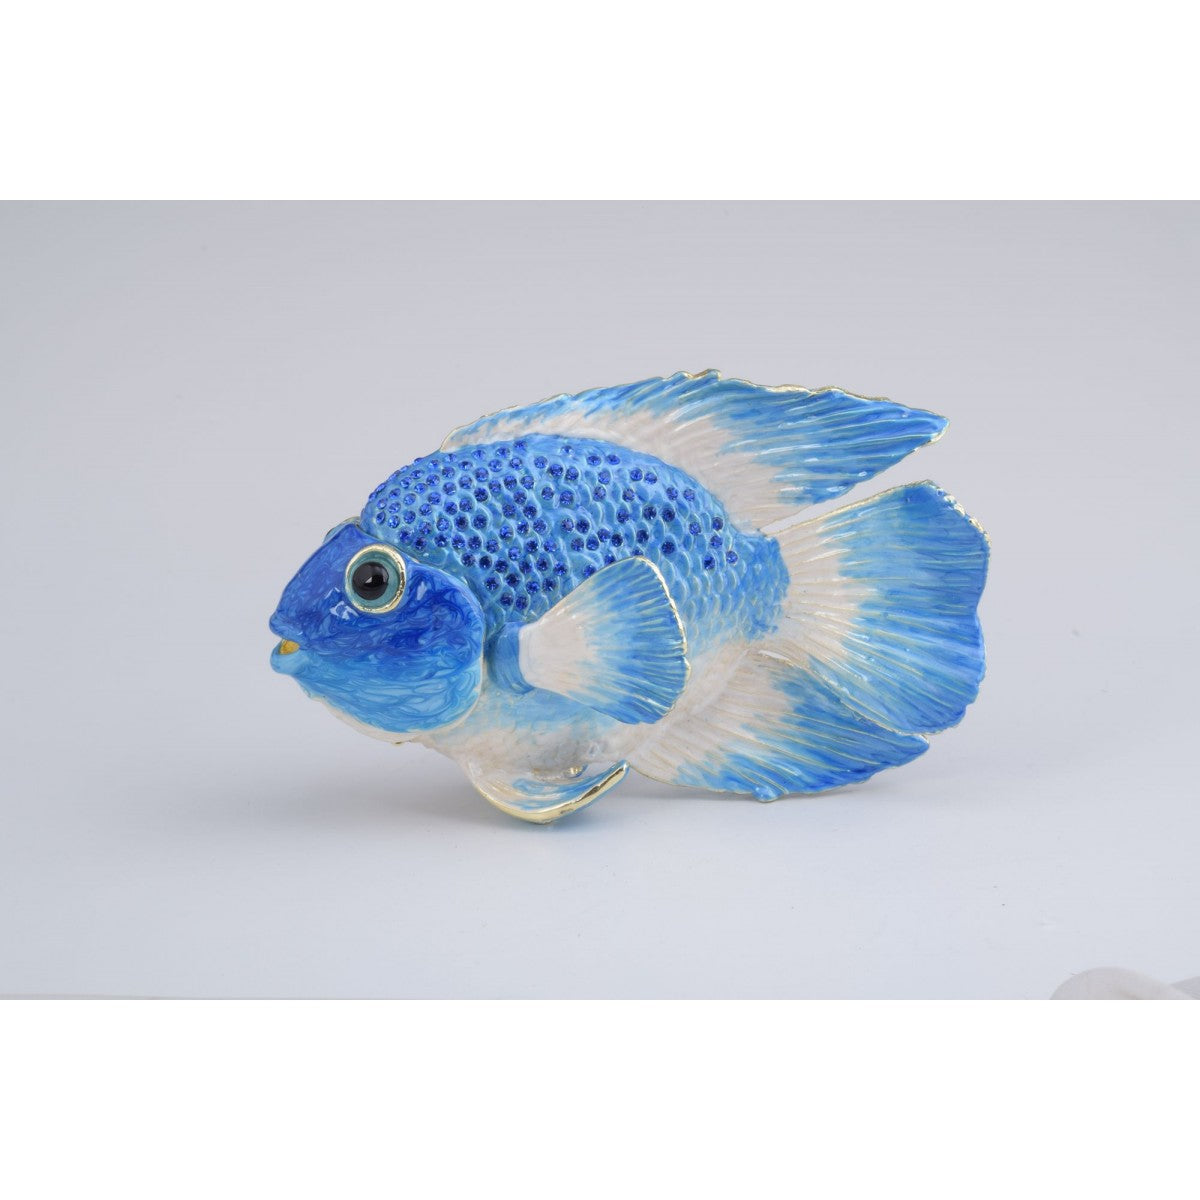 Blue Fish Trinket Box by Keren Kopal